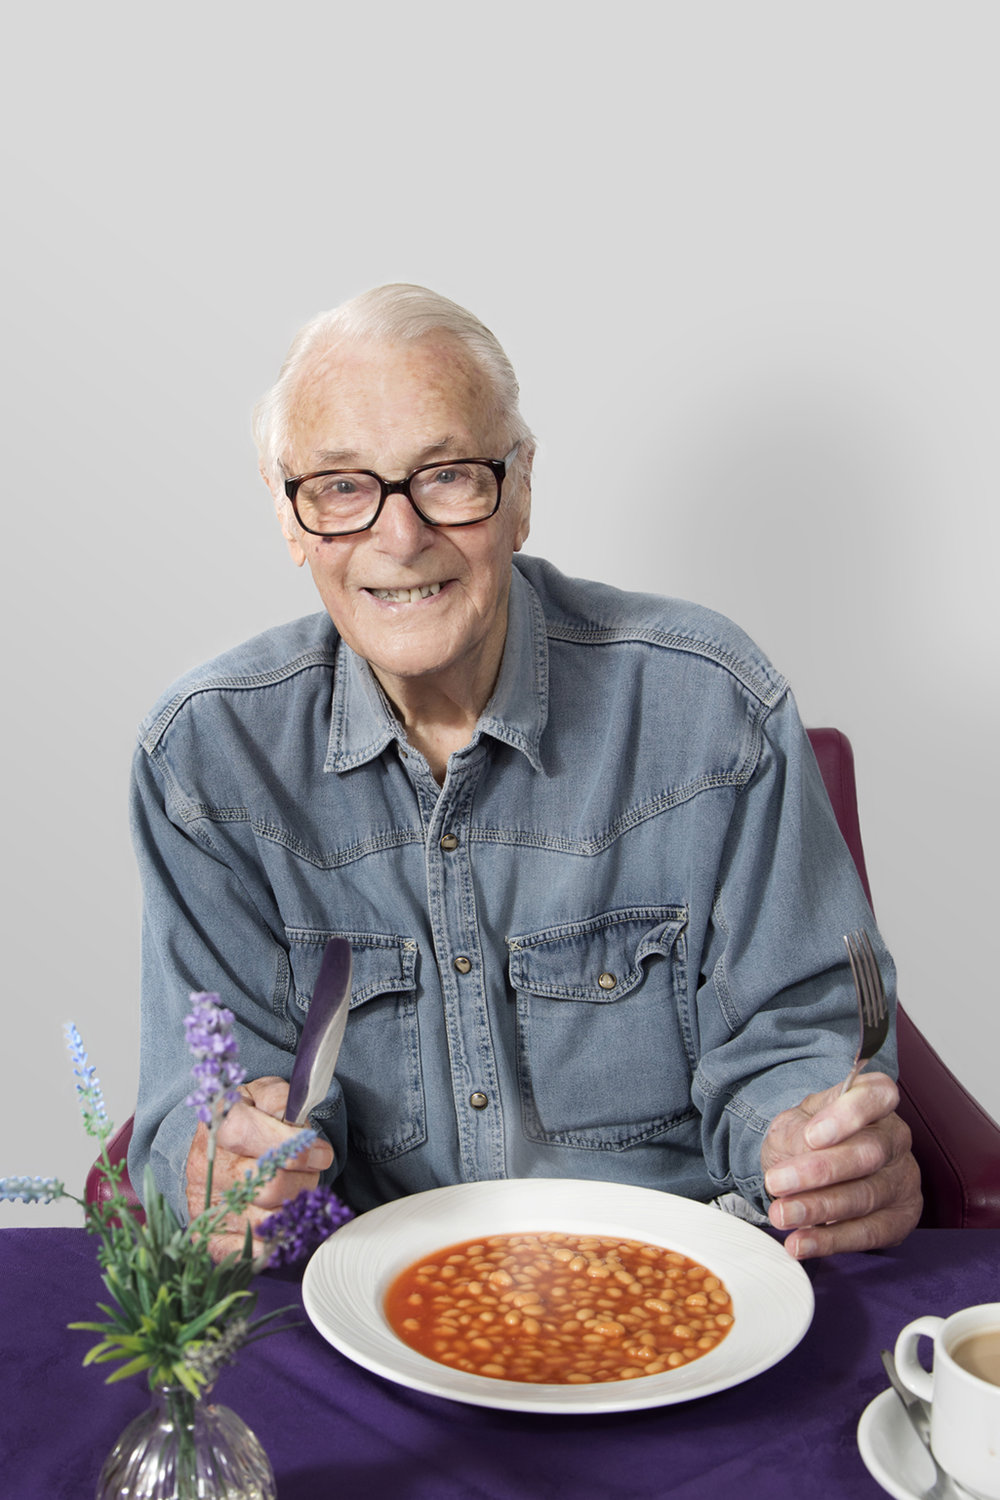 marcus_harvey_london_portrait_photographer_maurice_drake_beans_means_heinz_01.jpg